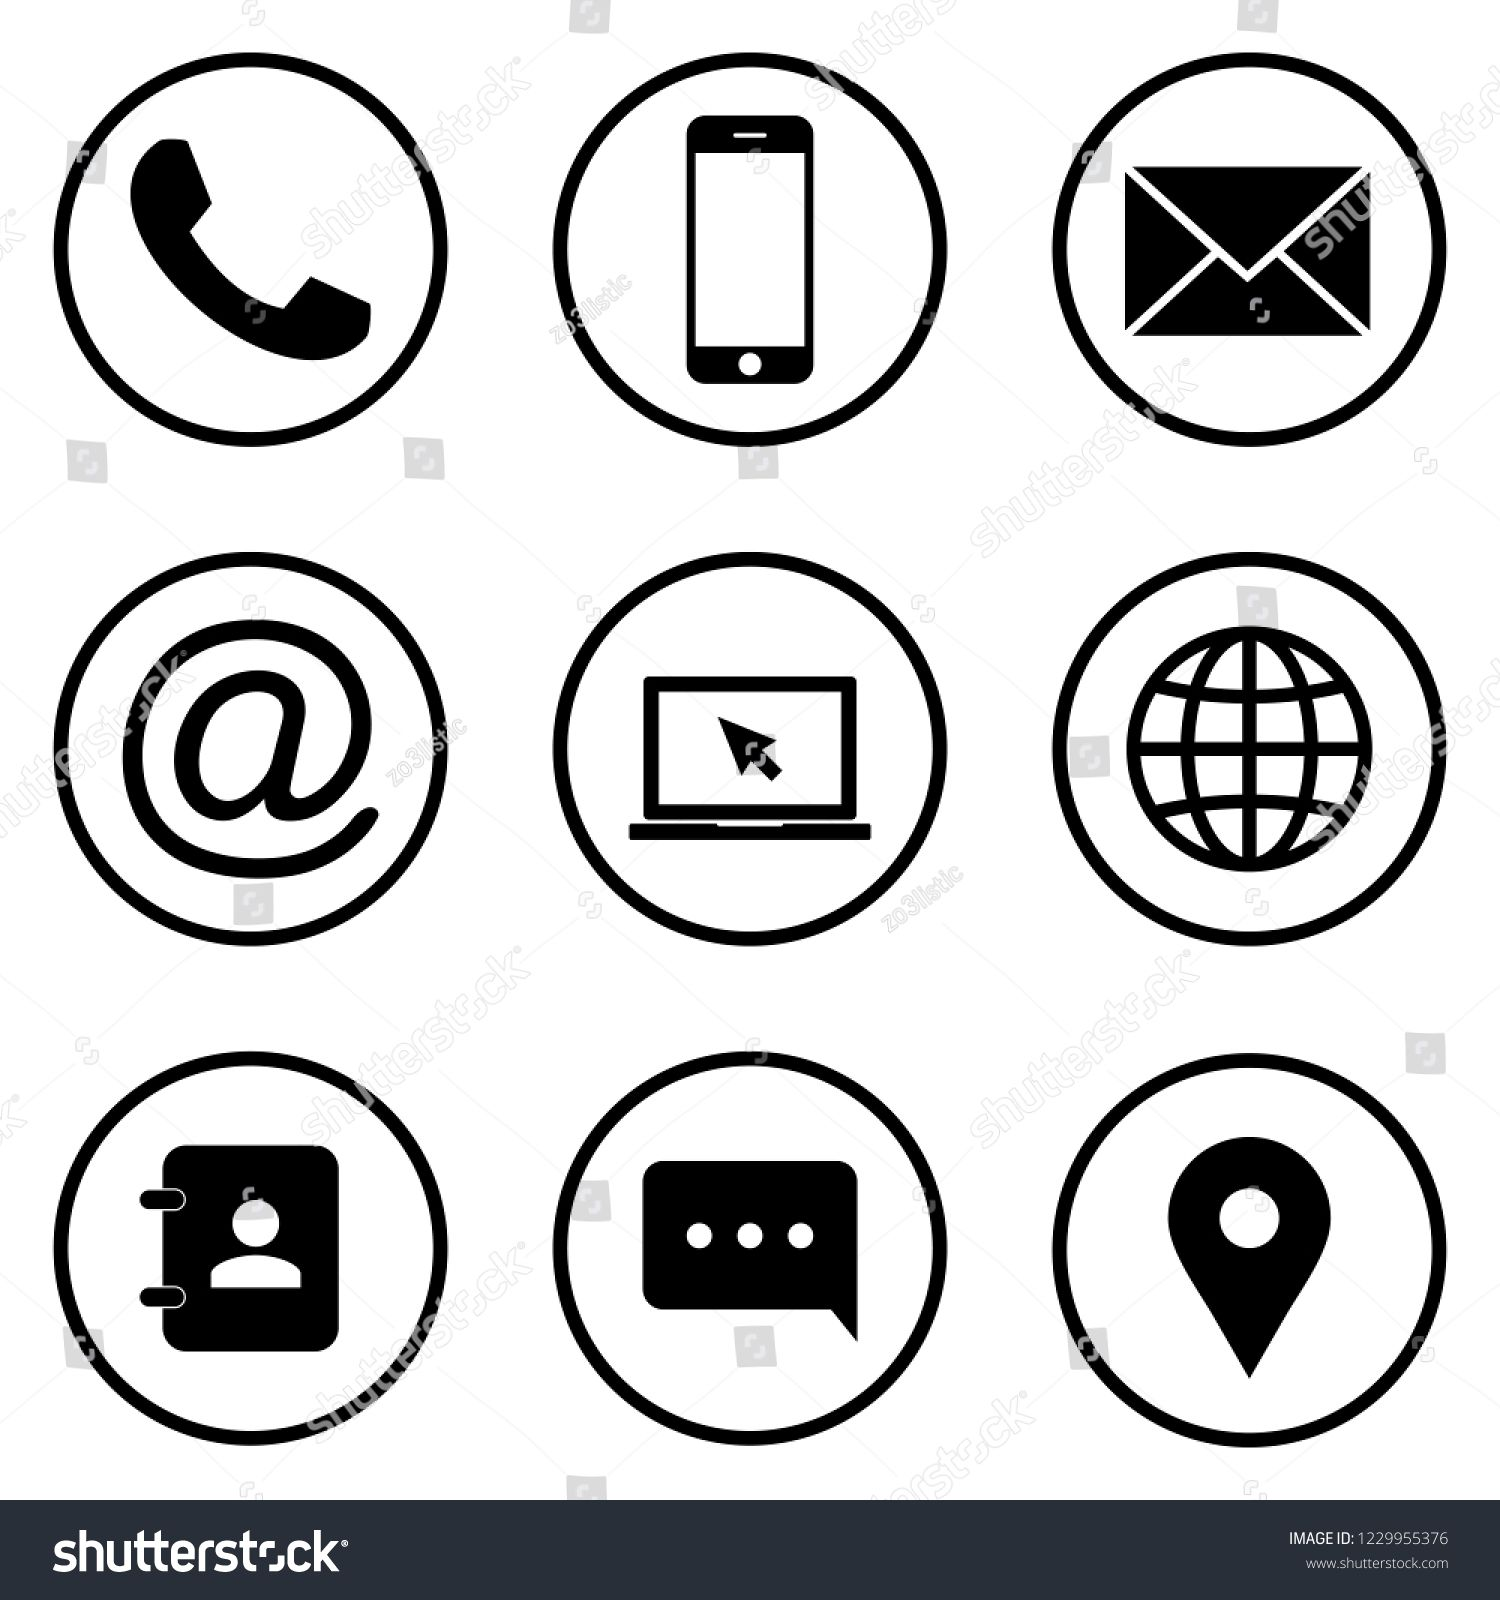 Contact Icons Web Icon Set Phone Website Mail Time Call Home Printer Laptop Calendar Chat Edit Ad Ad Web Icons Icon Set Wedding Vector Icons